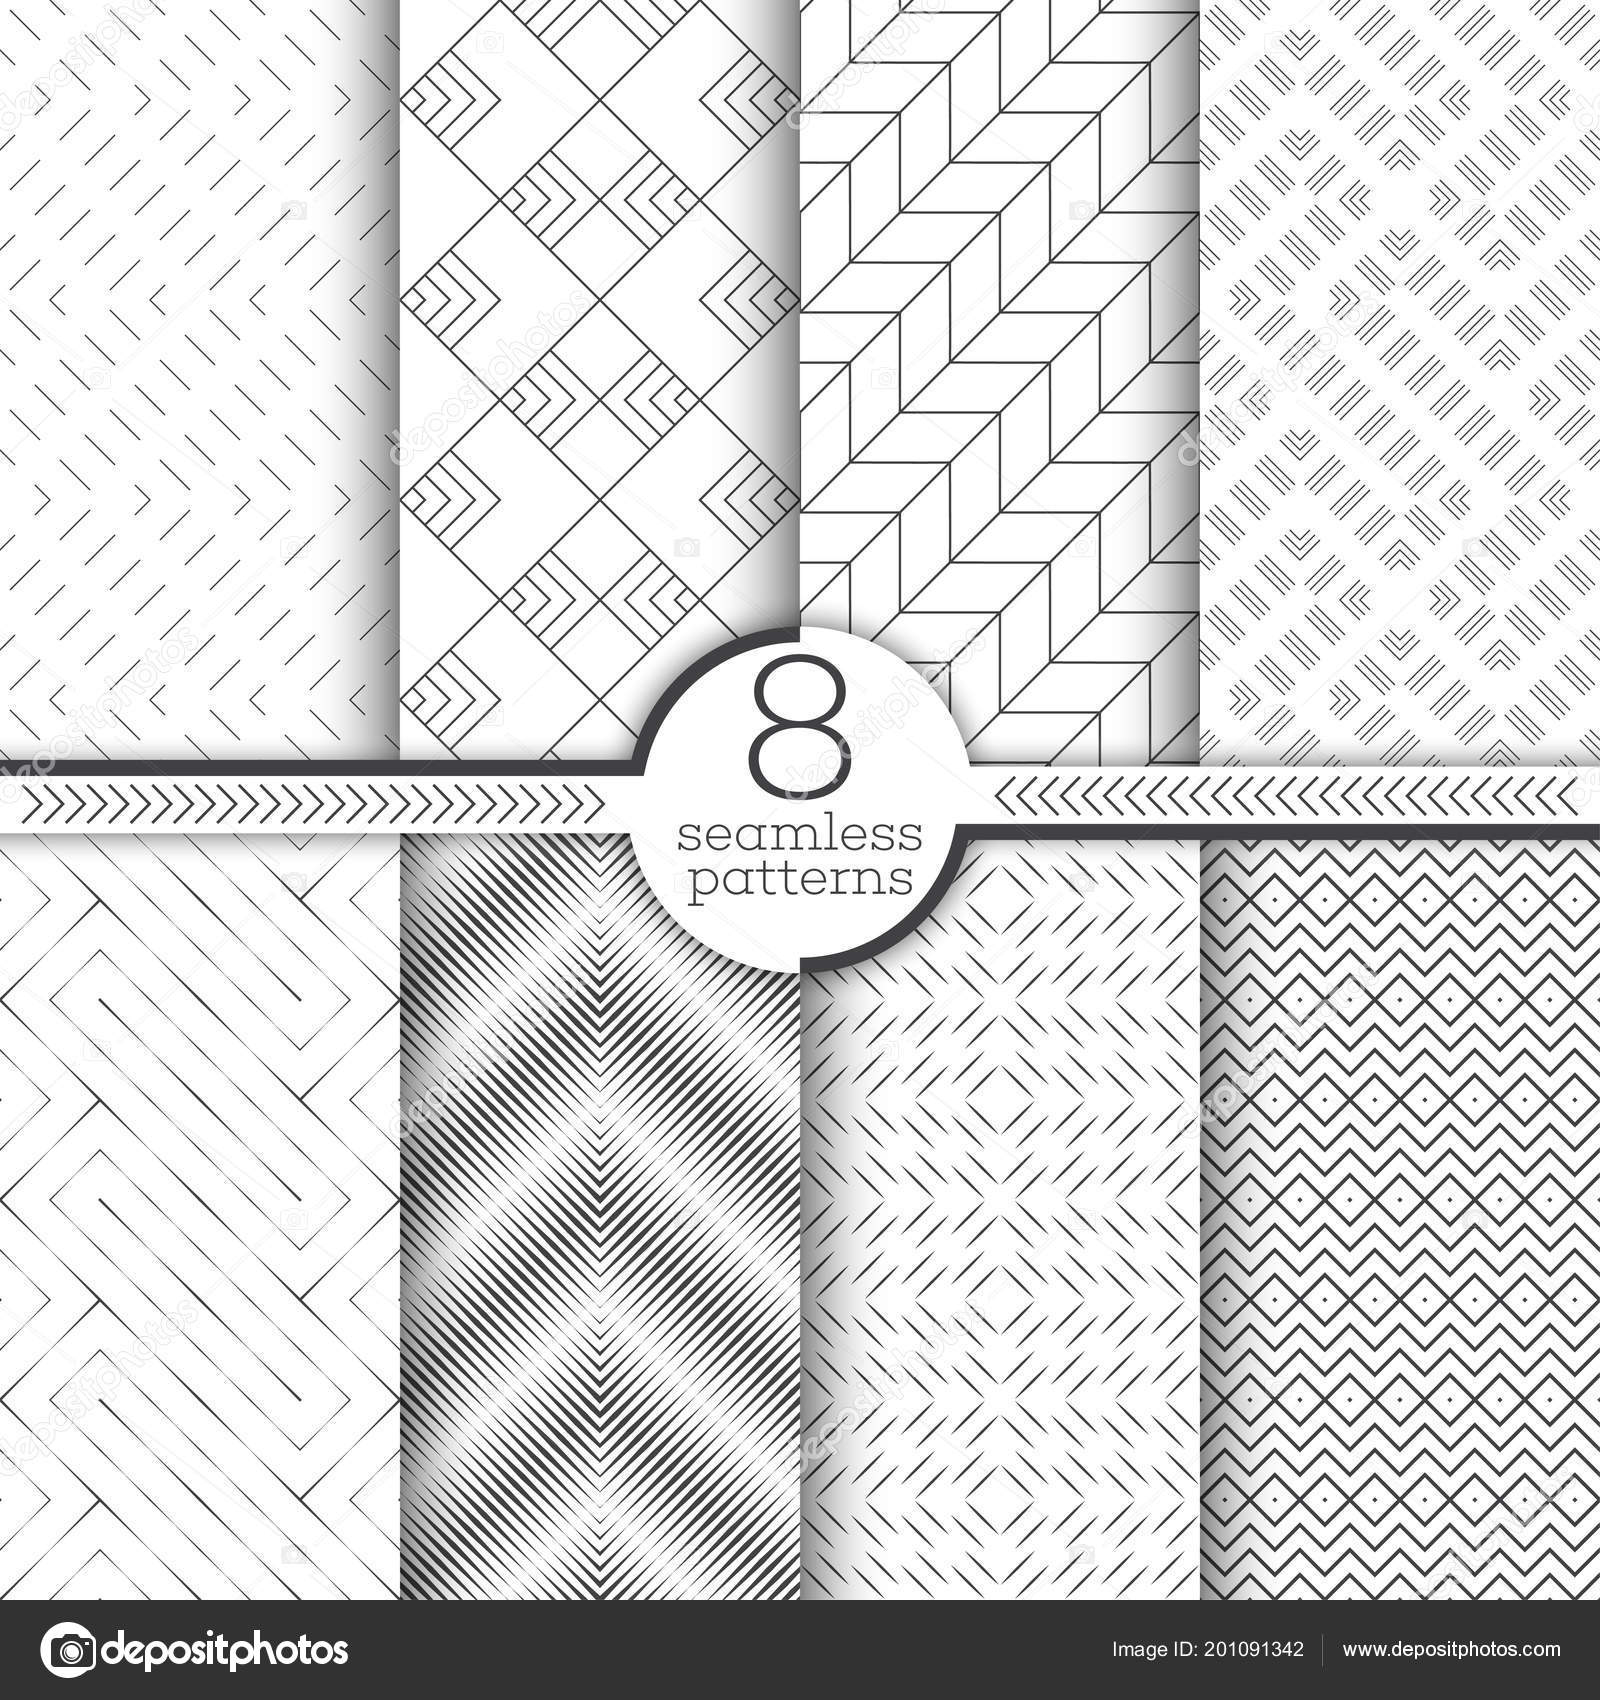 Infinitely Repeating Geometrical Ornaments With Linear Shapes, Zigzags, Rhombus, Diamond,